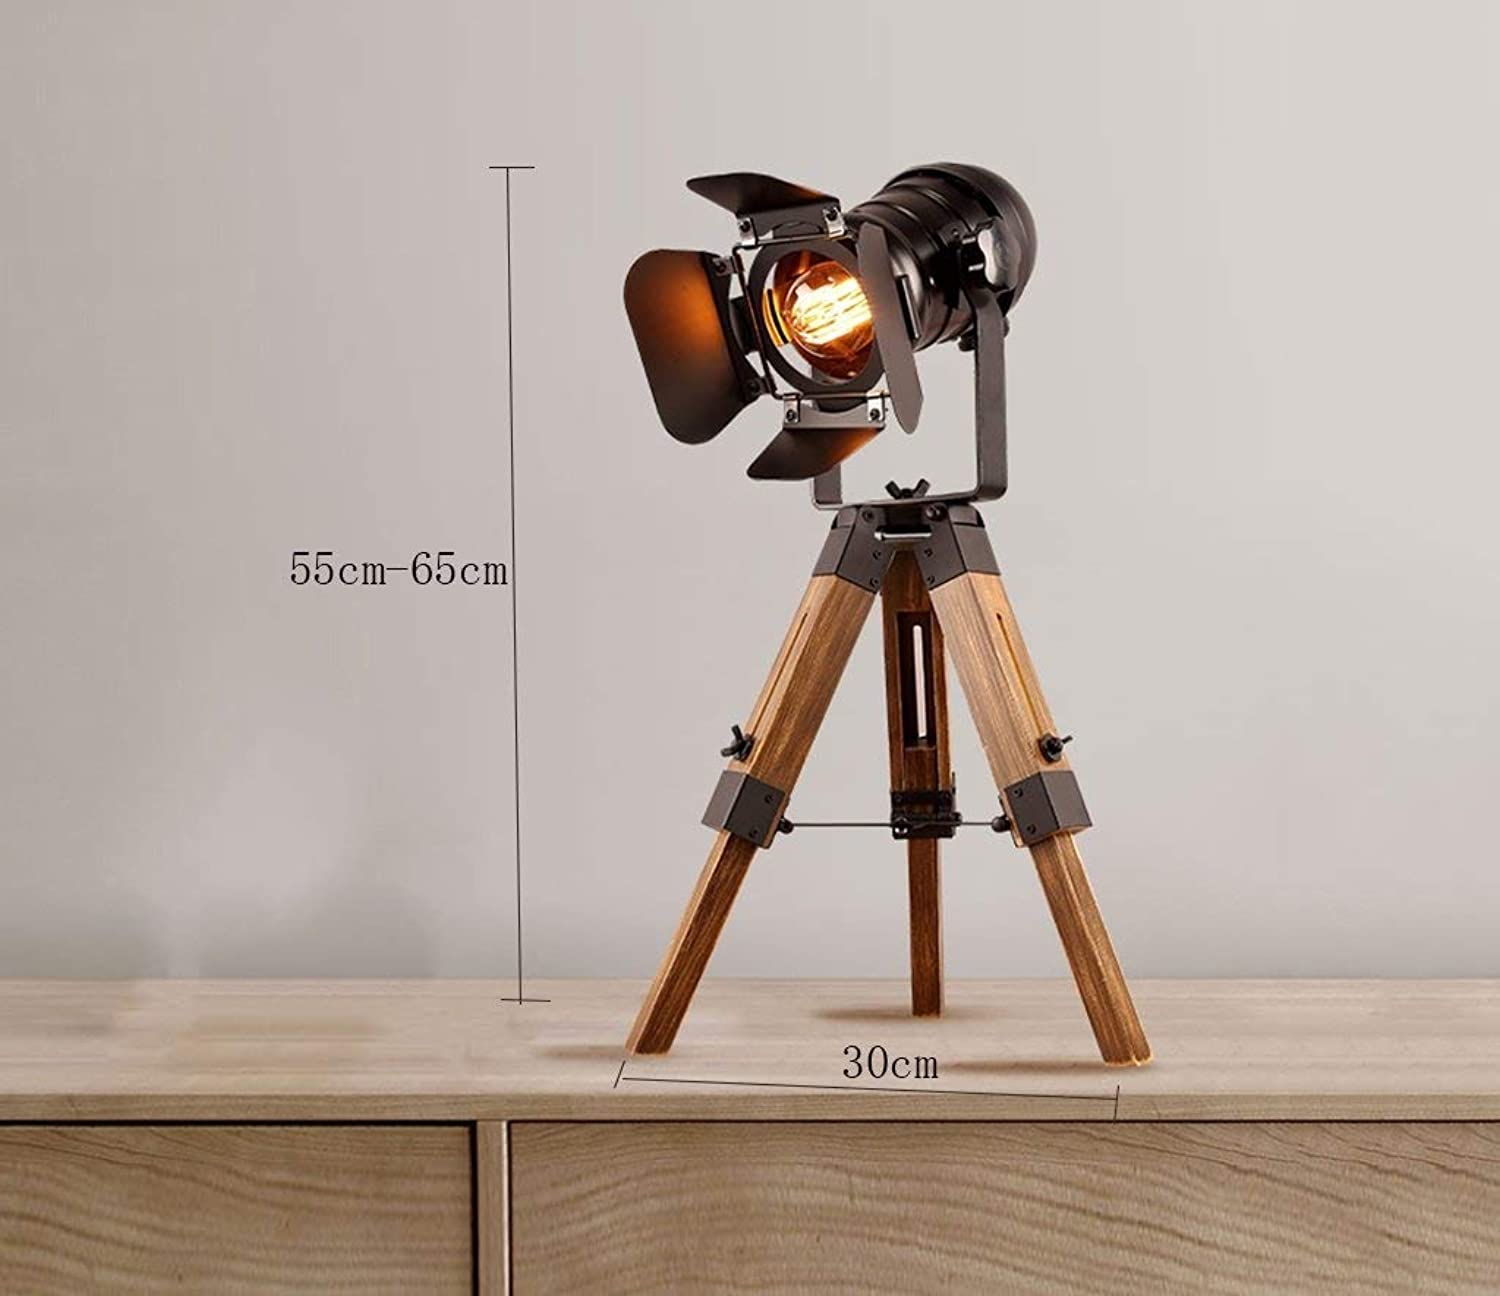 Loft Industrial Wind Table Lamp, Study Living Room Tripod Iron Can Lift up and Down Power Switch Button Bedroom Lamp Energy Saving and Environmental Predection Modern, ChuanHan